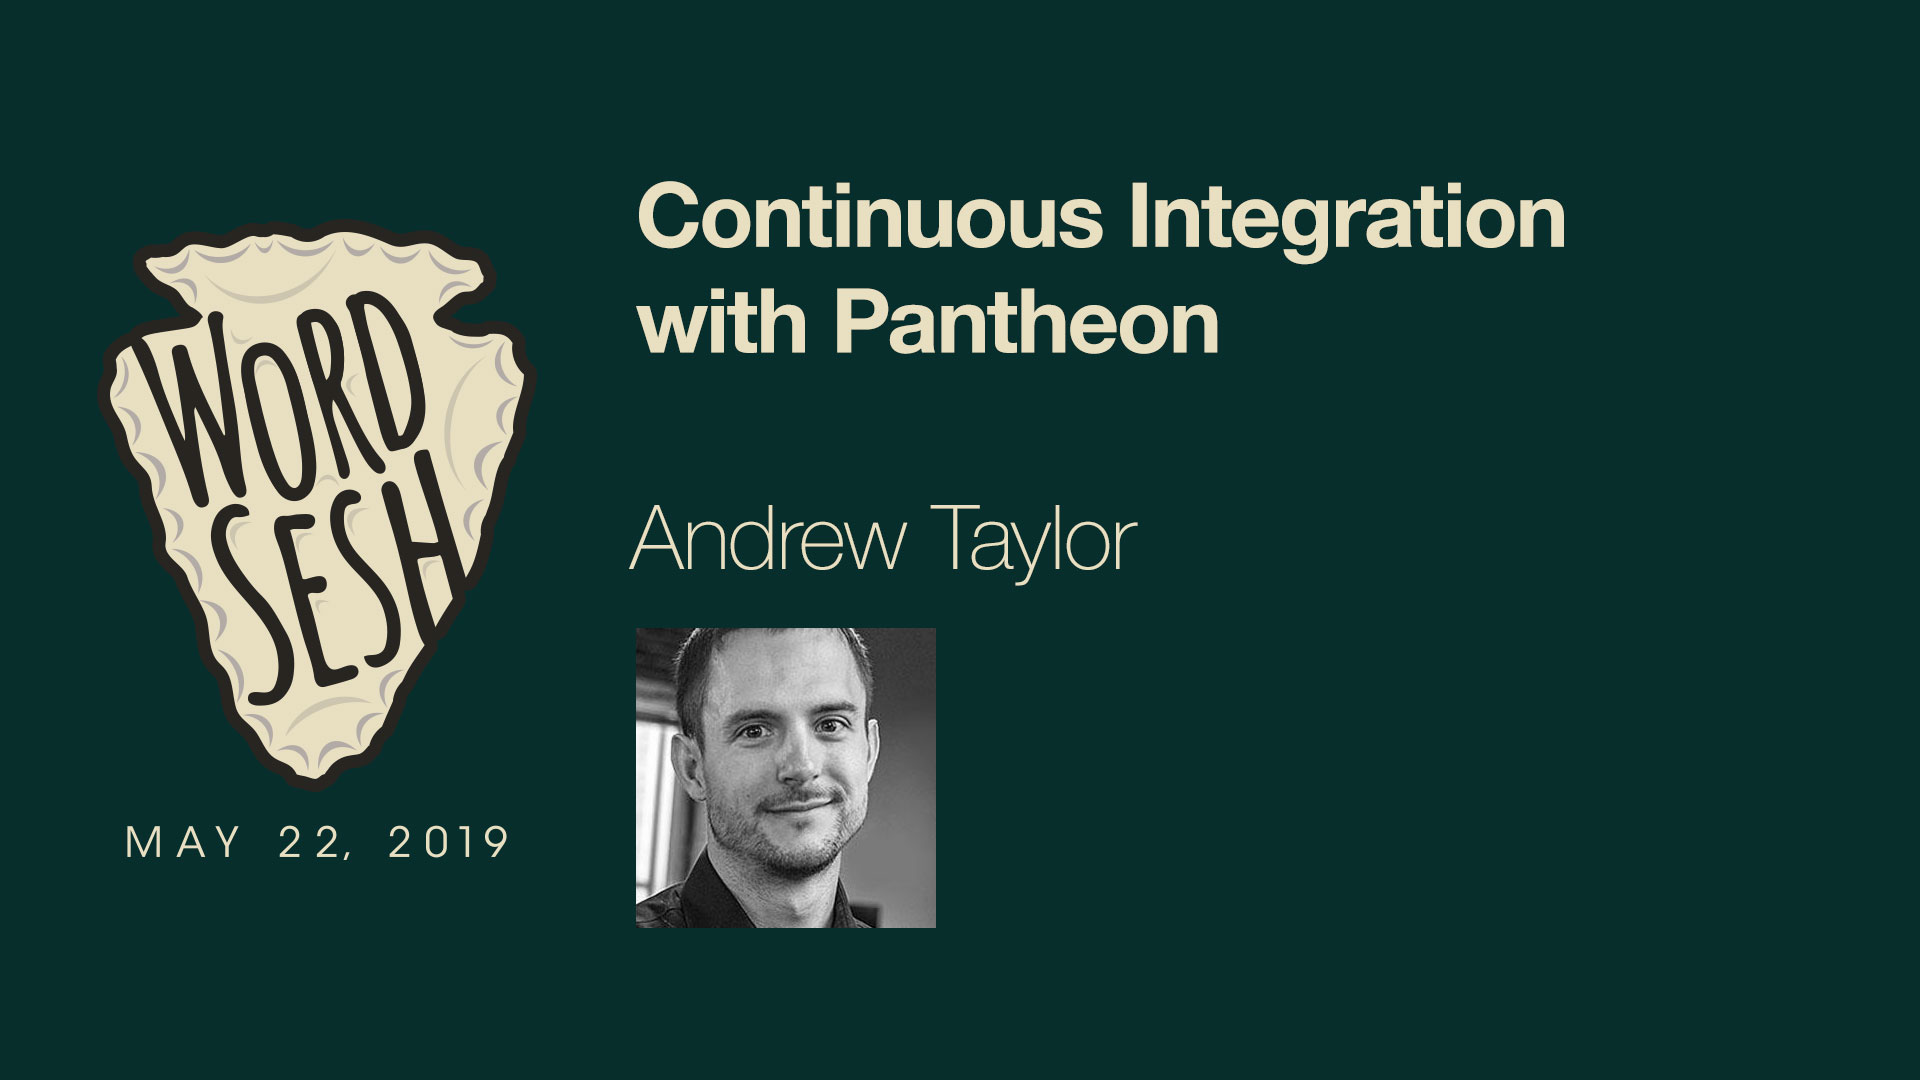 06-WordSesh-Continuous-Integration-Pantheon-Andrew-Taylor